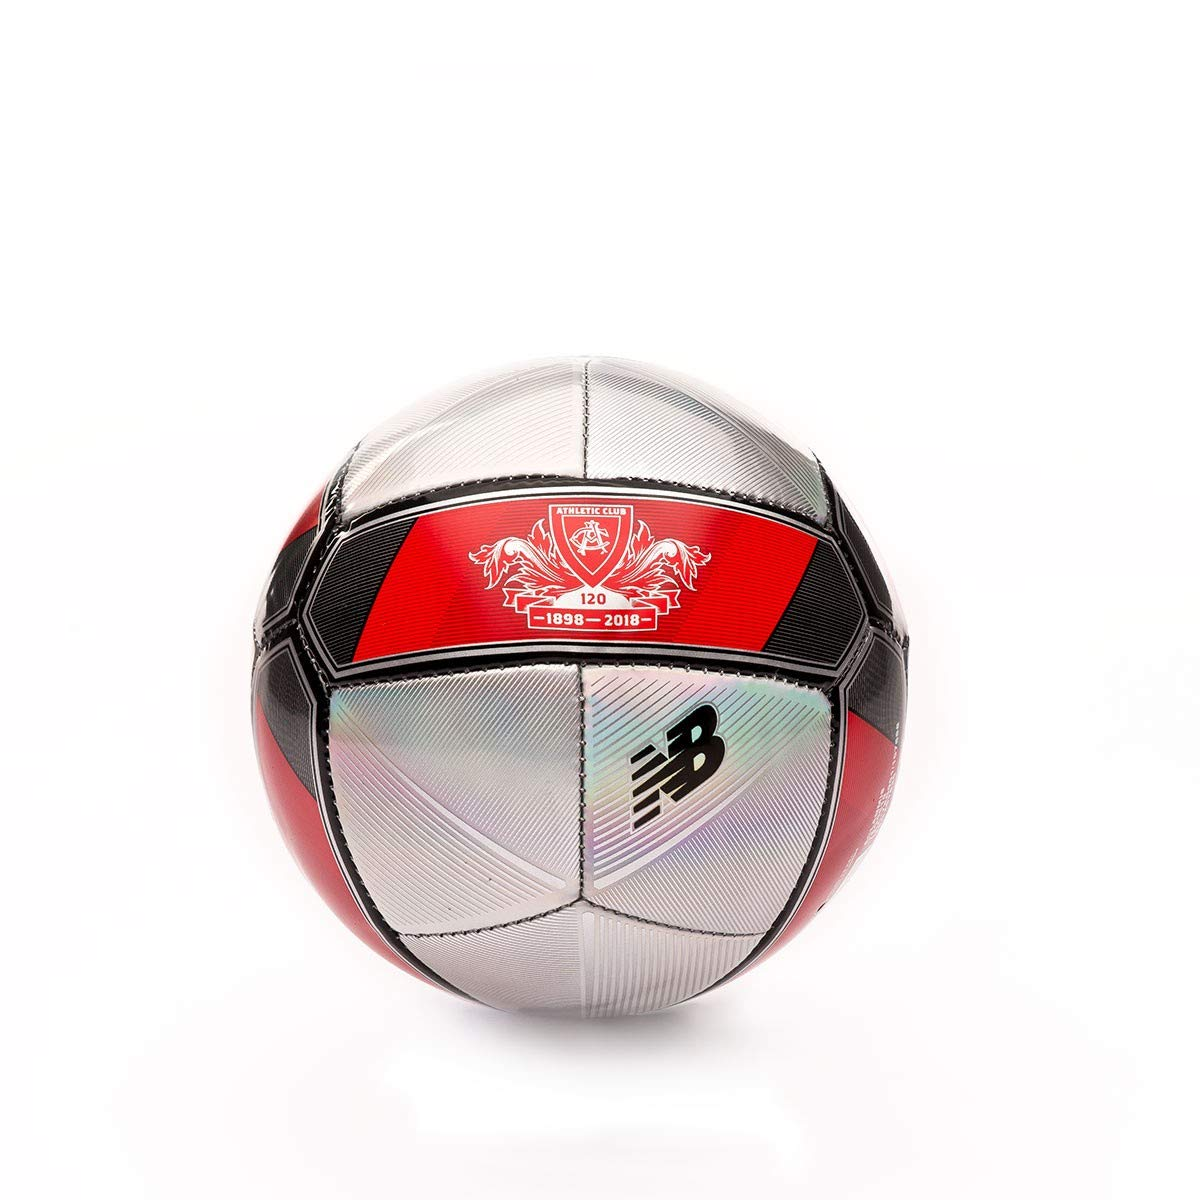 New Balance Mini AC Bilbao Aniversario 2018-2019, Balón, Grey-Red ...